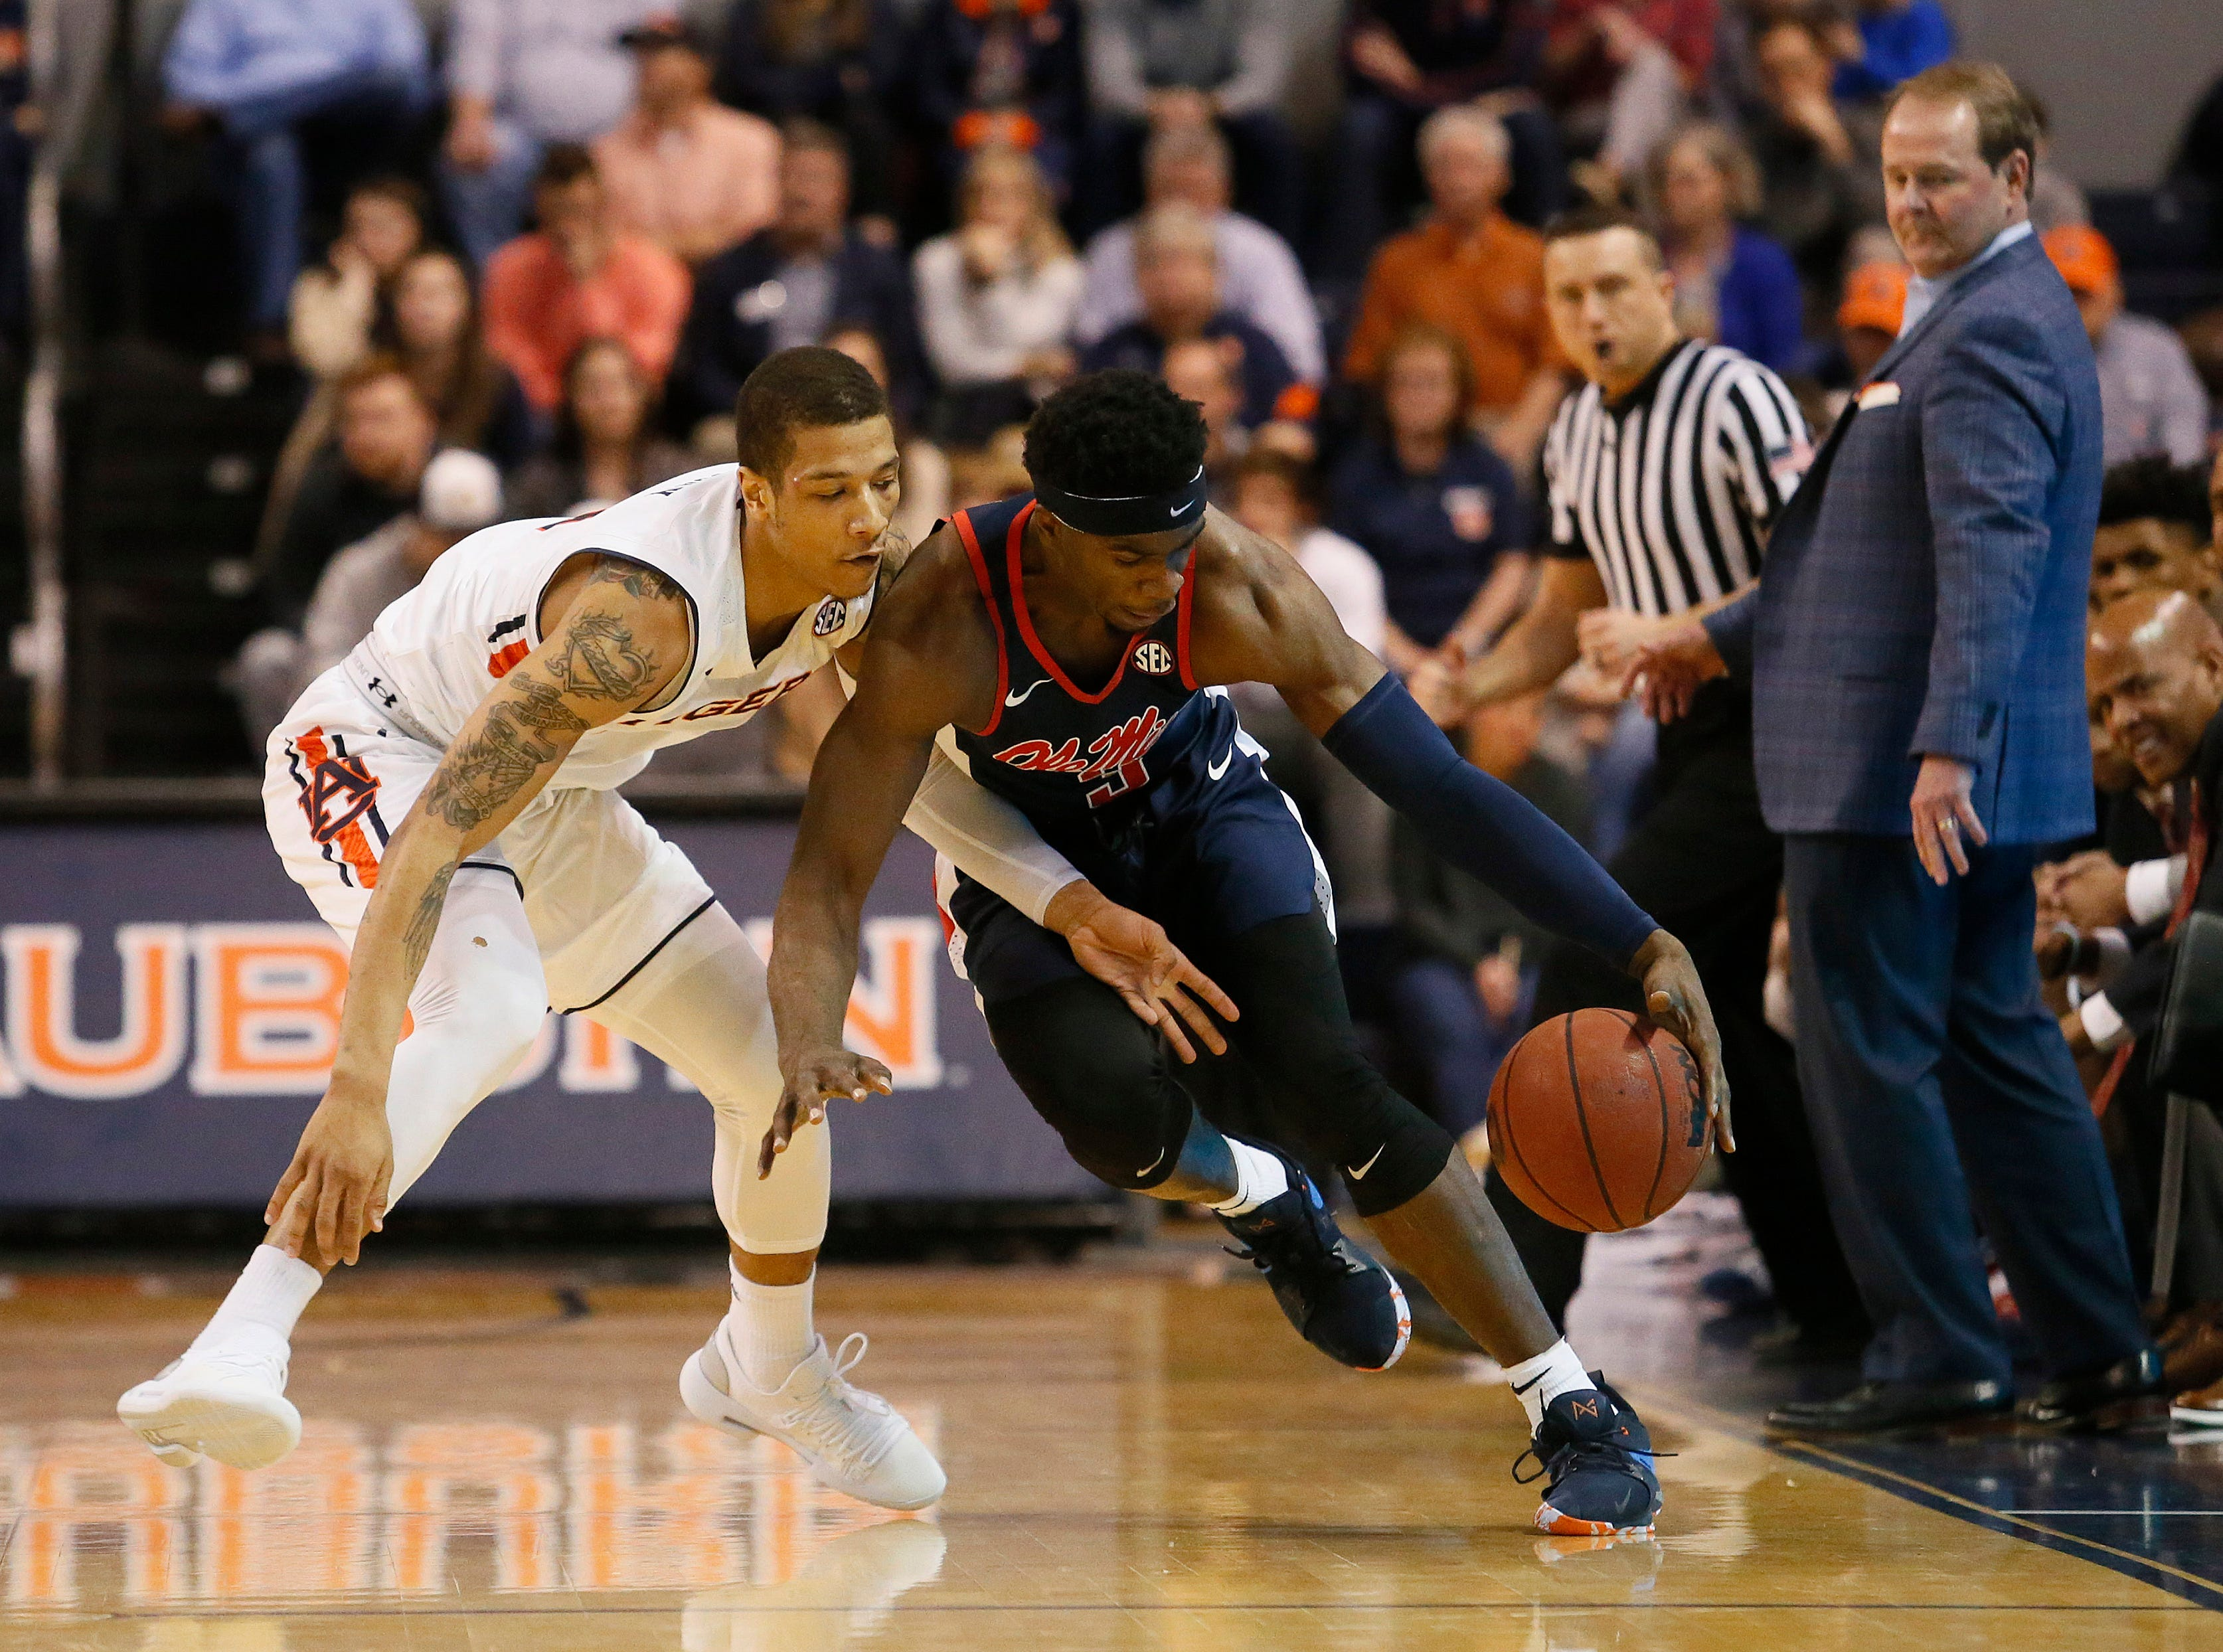 Feb 13, 2019; Auburn, AL, USA;  Ole Miss Rebels guard Terence Davis (3) and Auburn Tigers guard Samir Doughty (10) go for the ball during the second half at Auburn Arena. Mandatory Credit: John Reed-USA TODAY Sports